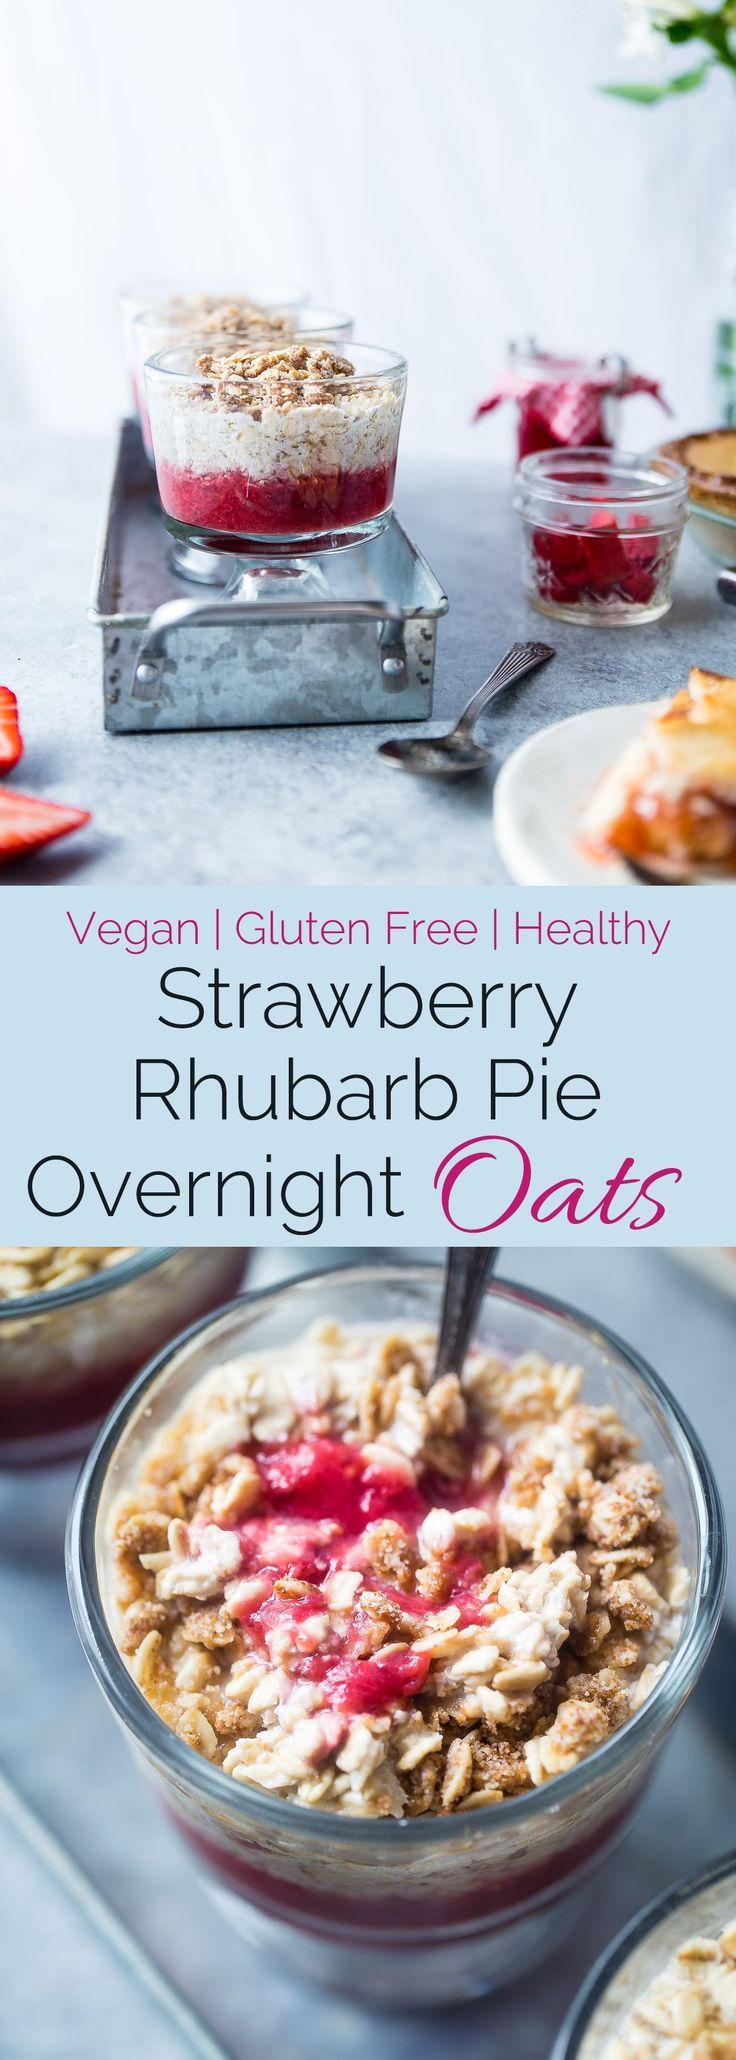 Strawberry Rhubarb Vegan Overnight Oats - These easy, gluten free overnight oats taste like waking up to a healthy slice of pie for breakfast! Make-ahead friendly and only 200 calories!   Foodfaithfitness.com   @FoodFaithFit